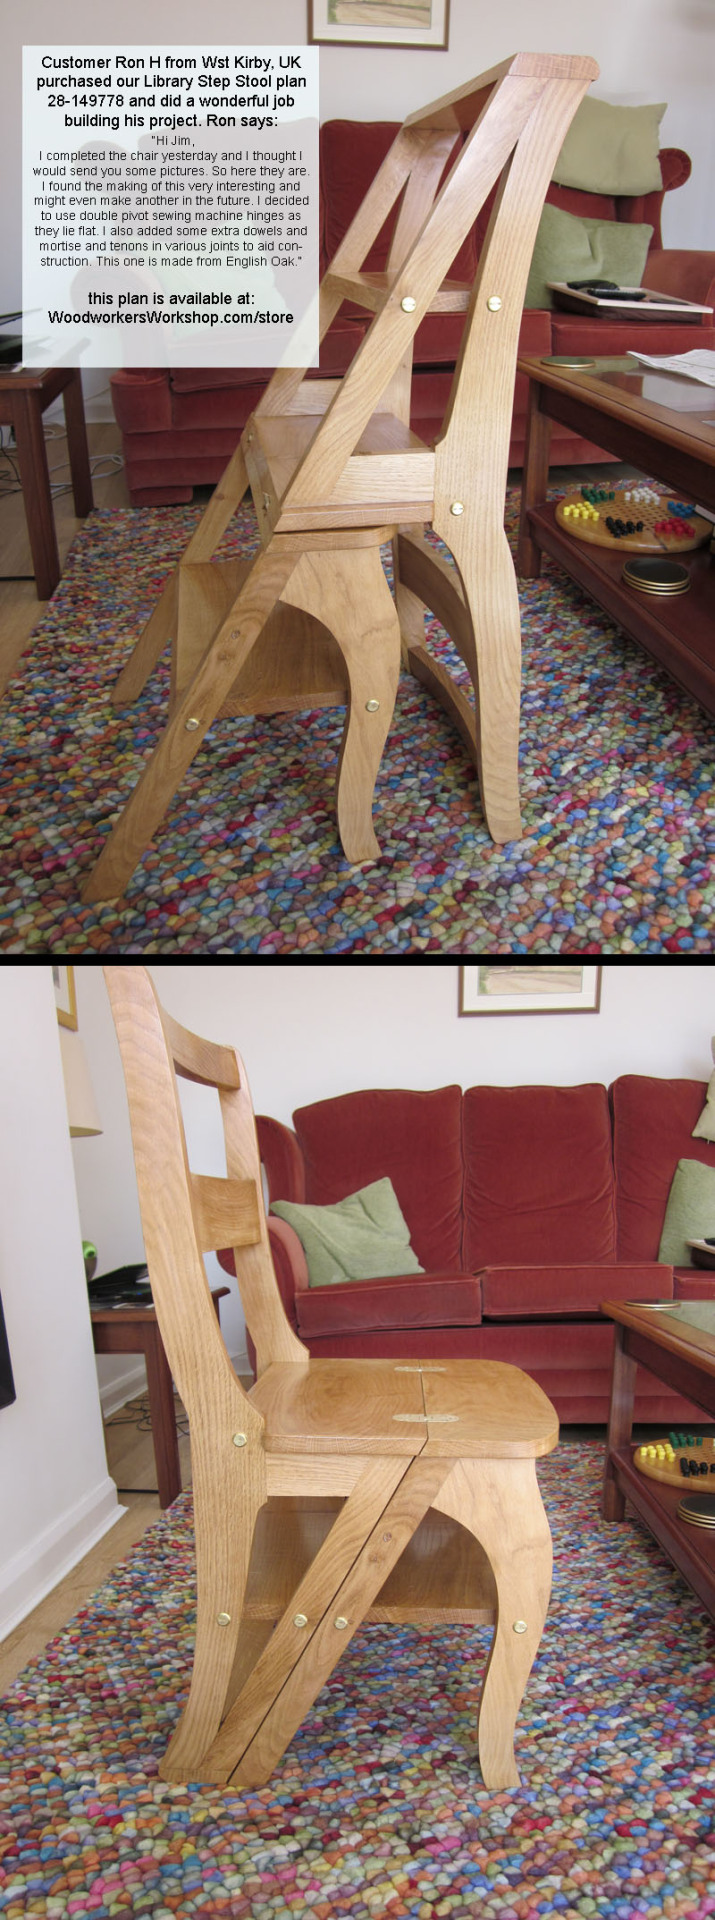 woodworkersworkshop:  Hi Jim, I completed the chair yesterday and I thought I would send you some pictures. So here they are. I found the making of this very interesting and might even make another in the future. I decided to use double pivot sewing machine hinges as they lie flat. I also added some extra dowels and mortise and tenons in various joints to aid construction. This one is made from English Oak. Cheers, Ron H  Following all sorts of new stuff tonight